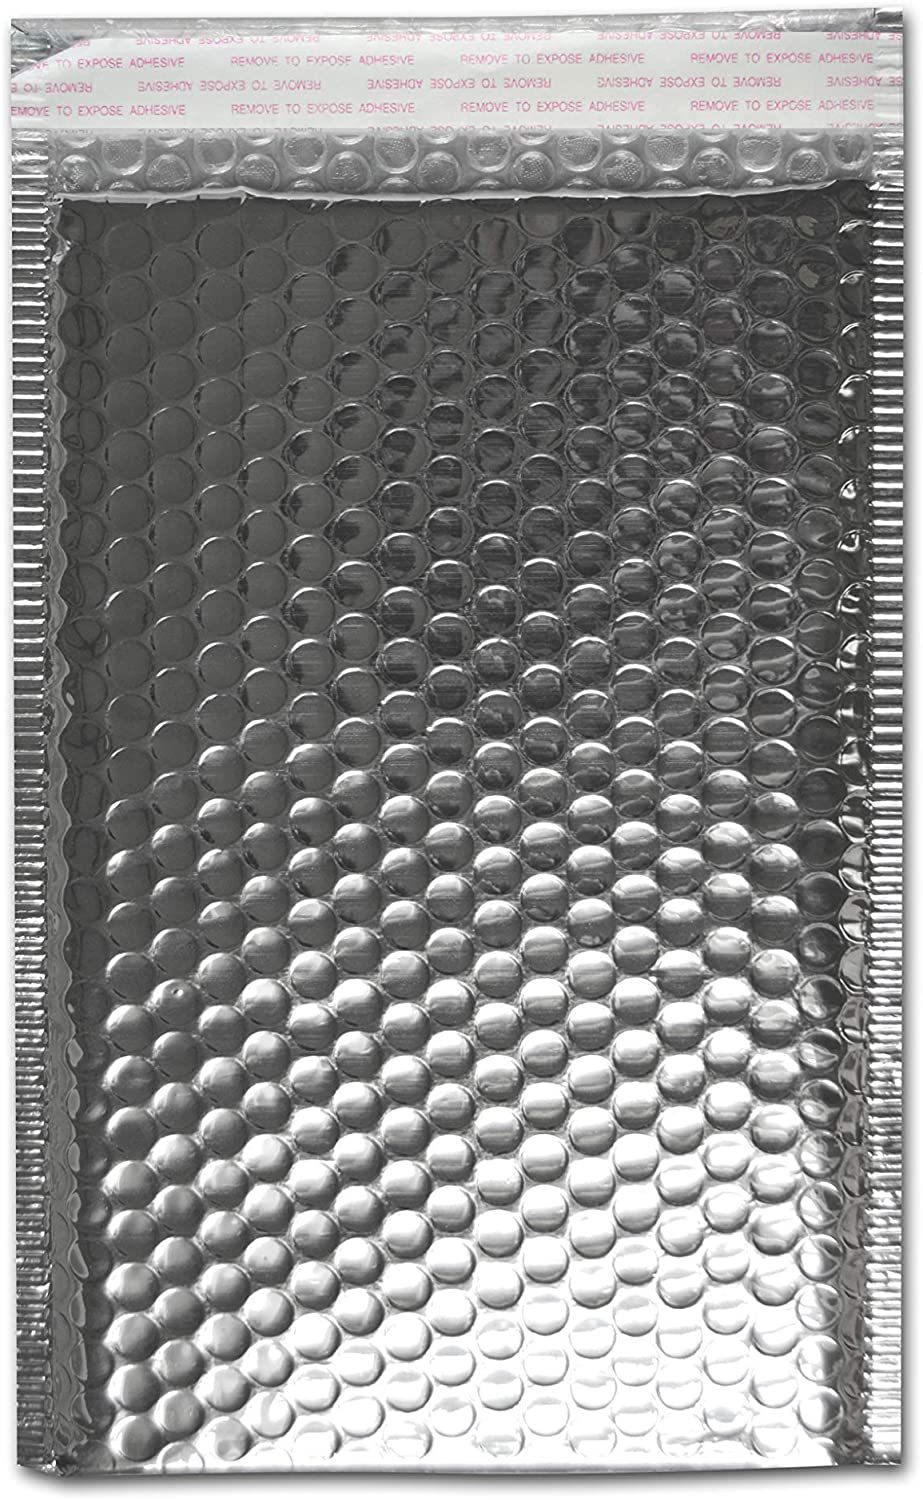 16x17.5 Bubble PolyMailer Padded Envelopes, 16 x 17.5 Inch, Peel & Seal, Silver, 200 Pack